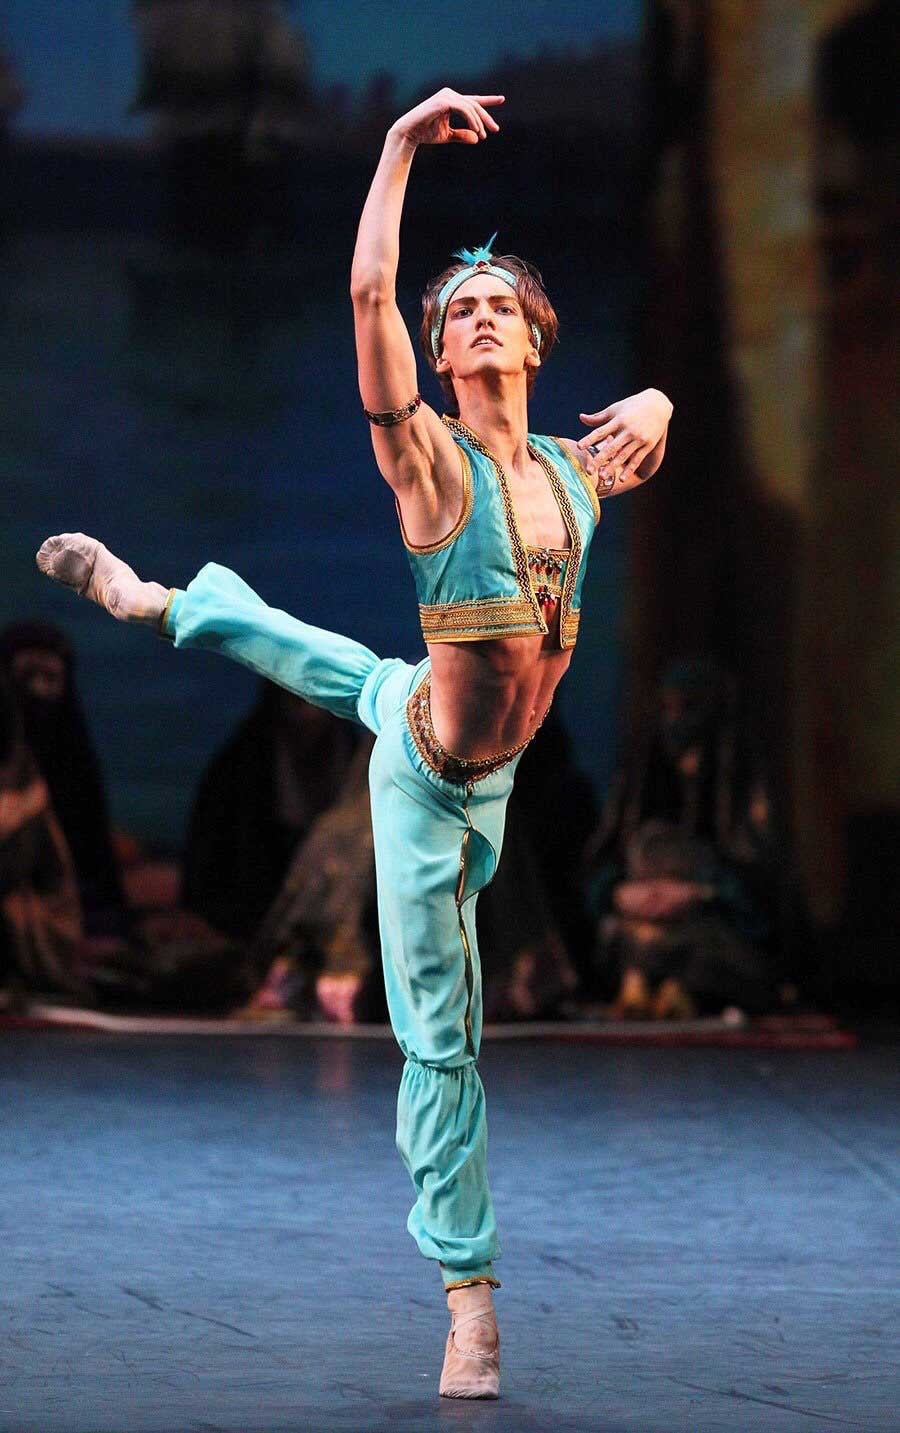 Julian as the Slave in 'Le Corsaire'